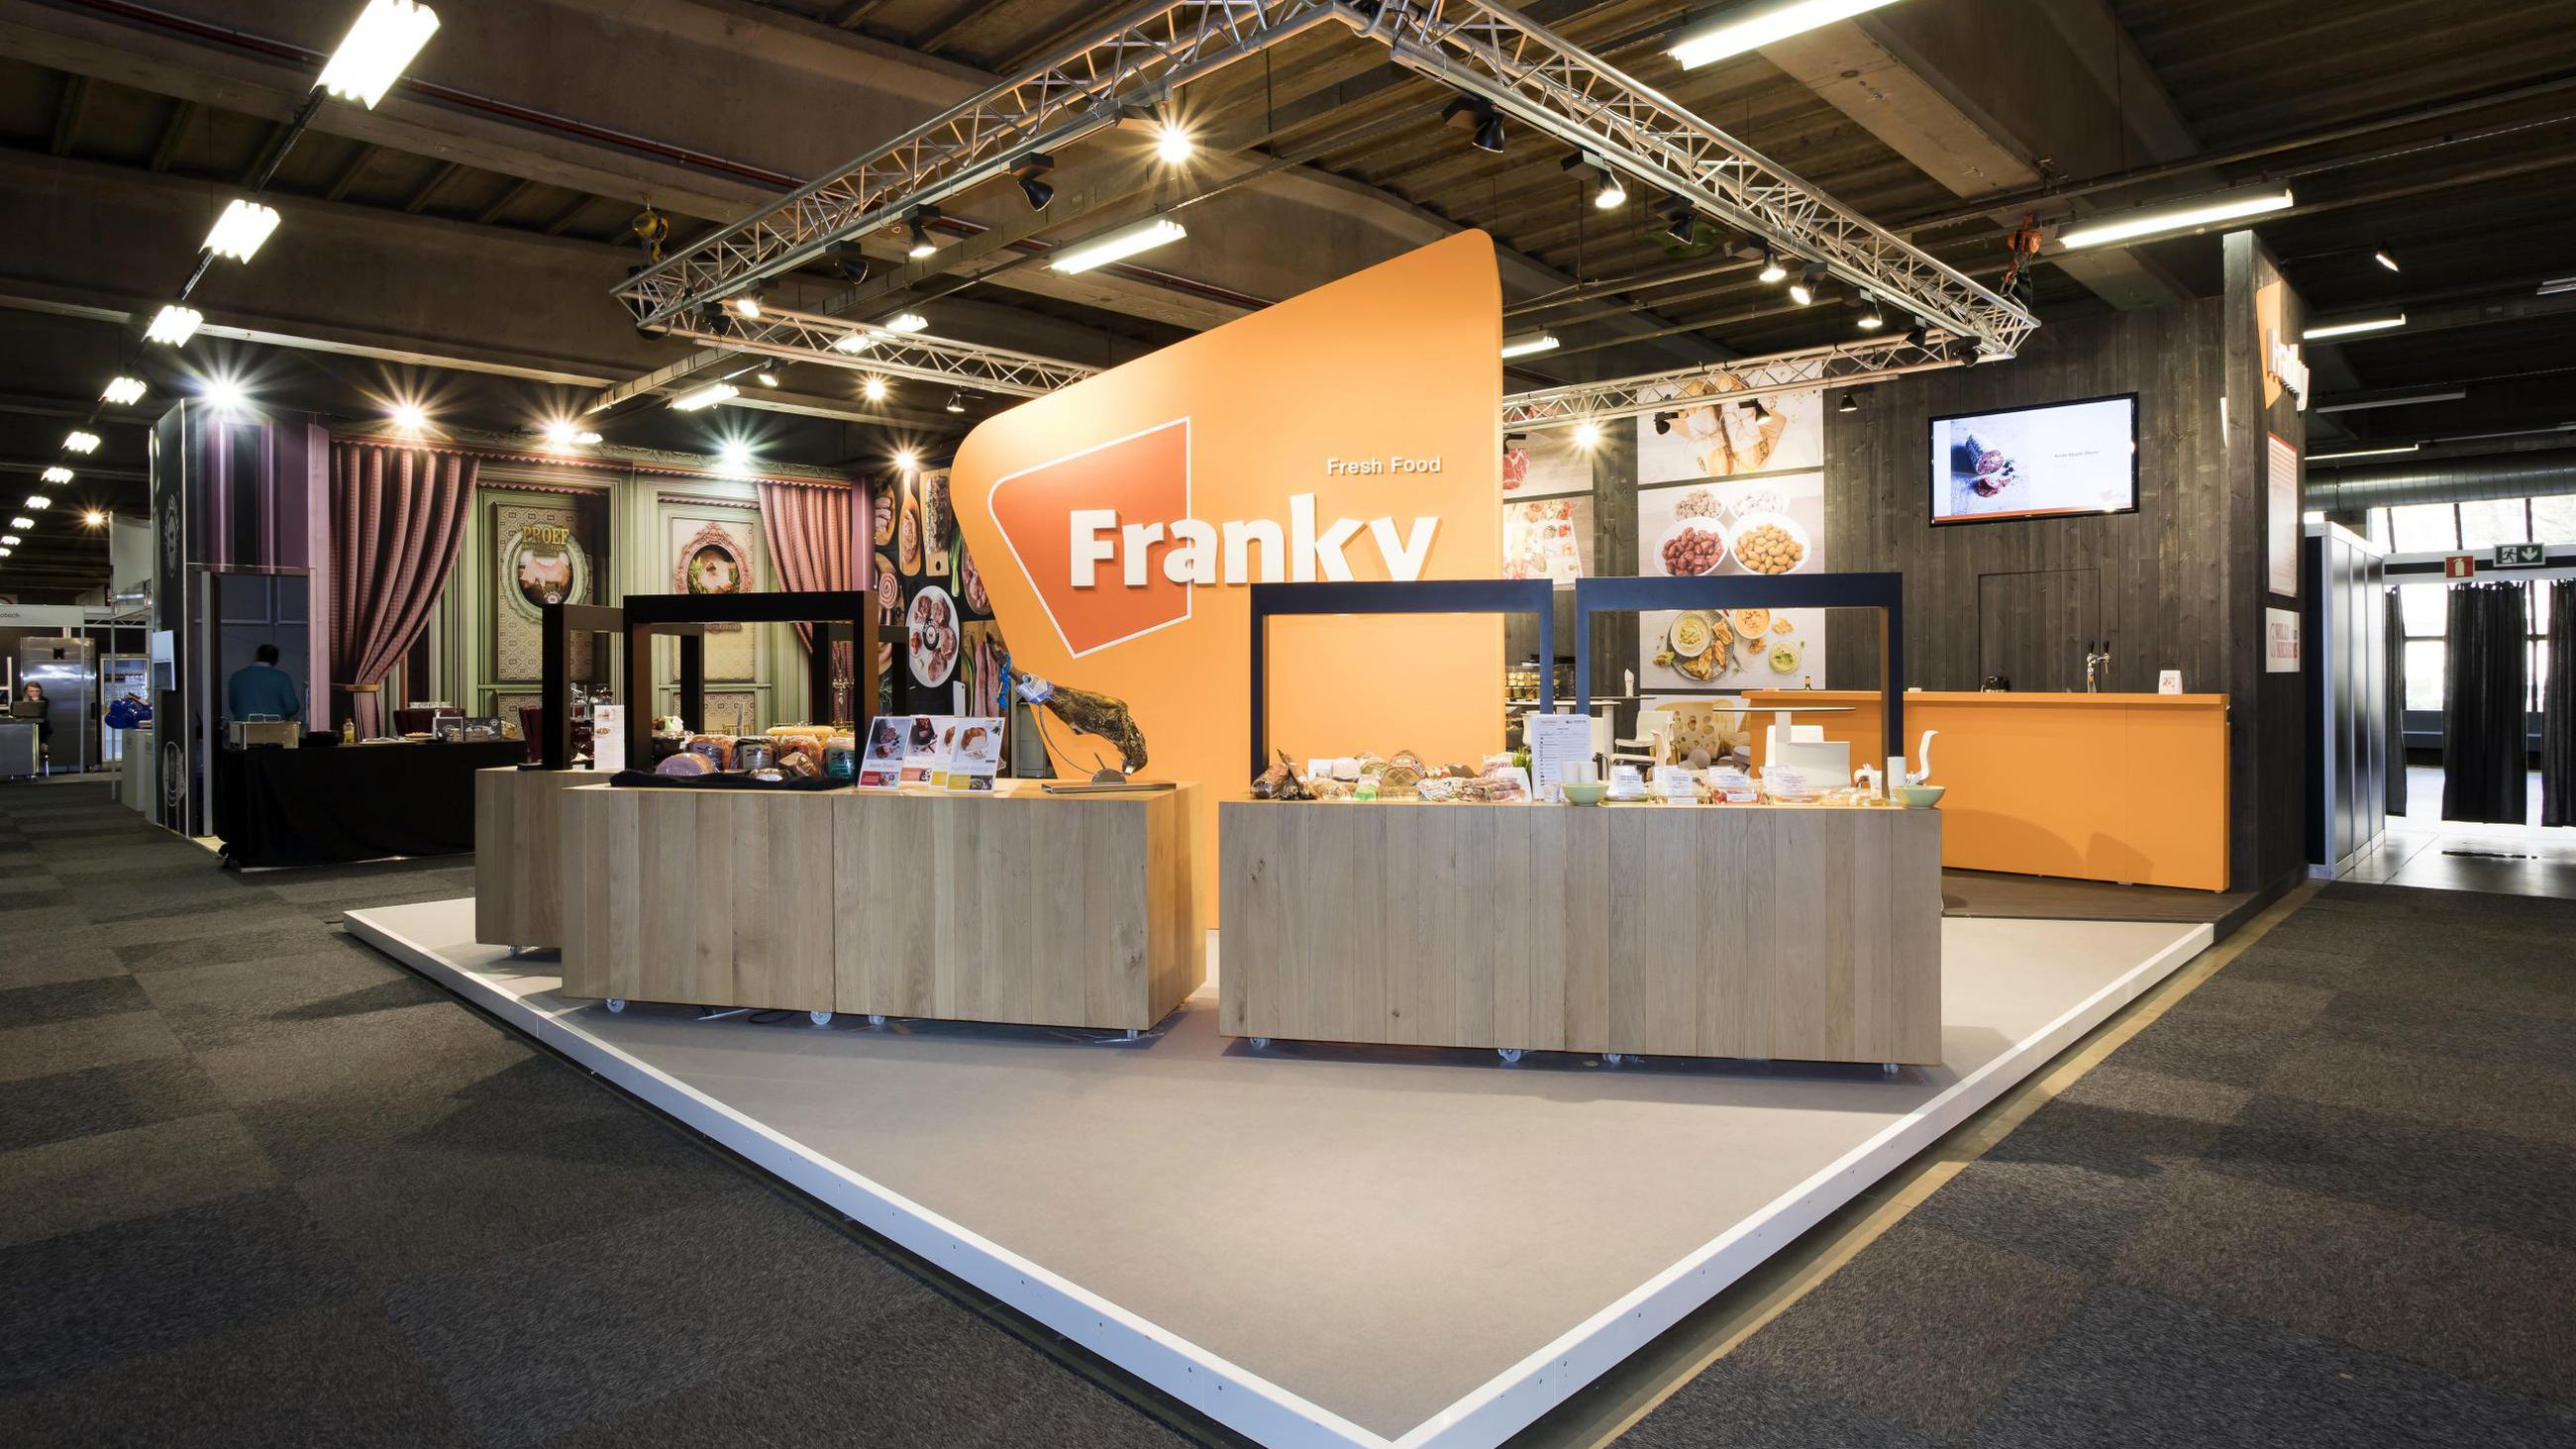 Franky - Standenbouw Guido Goethals